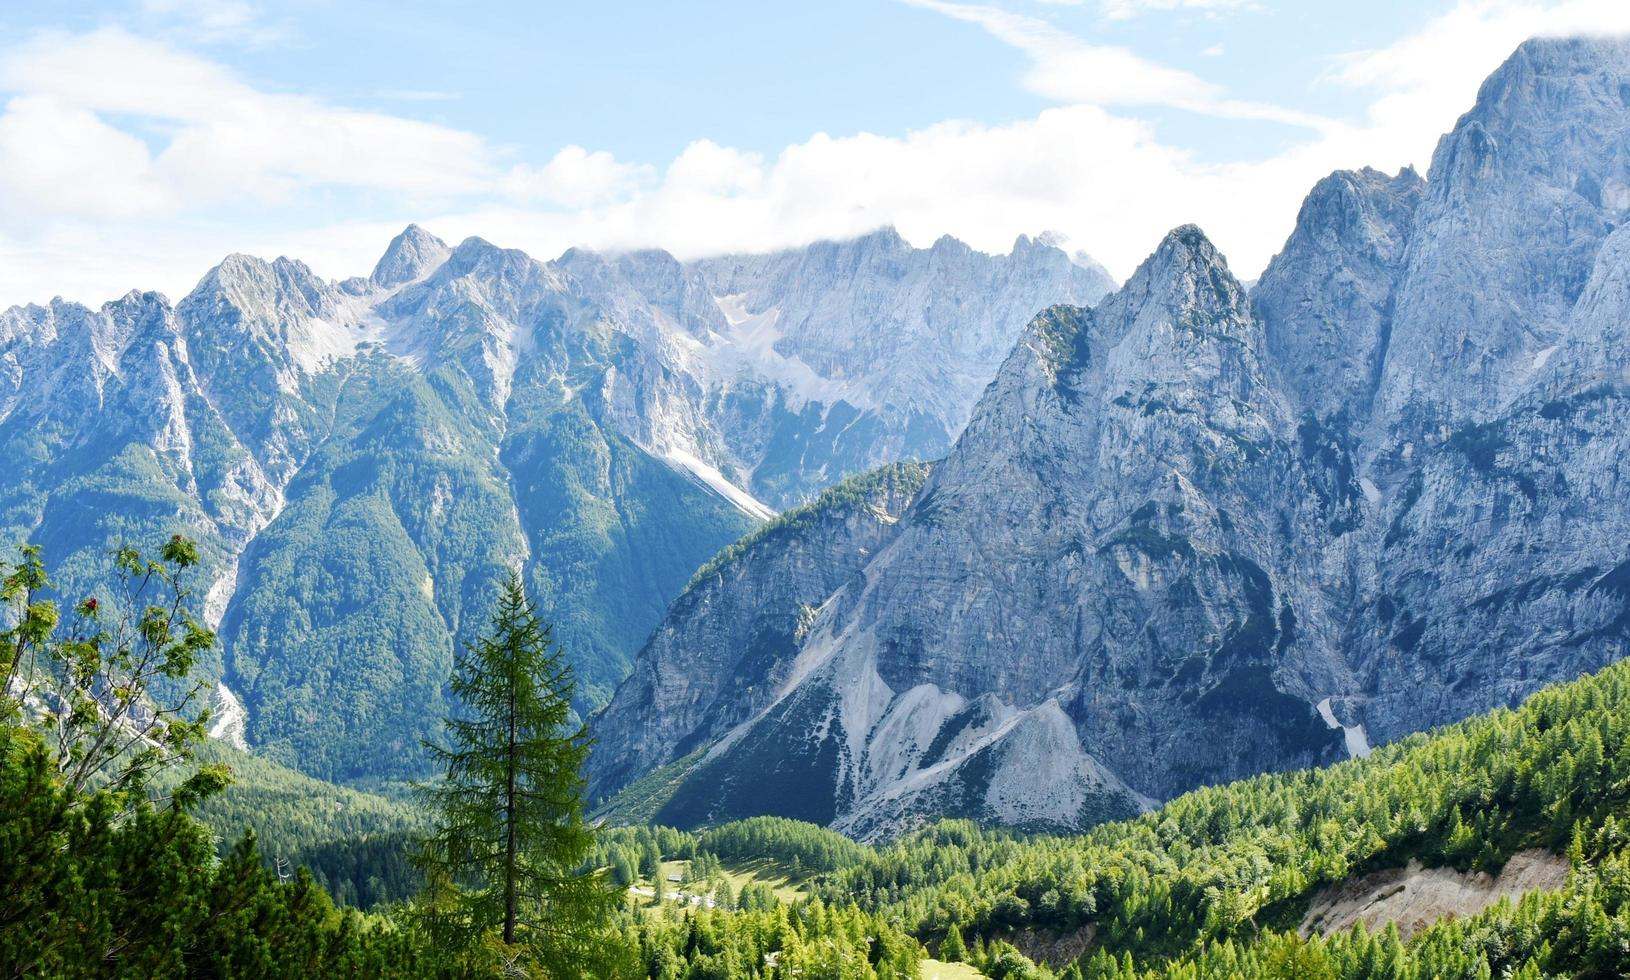 Julian Alps mountains photo